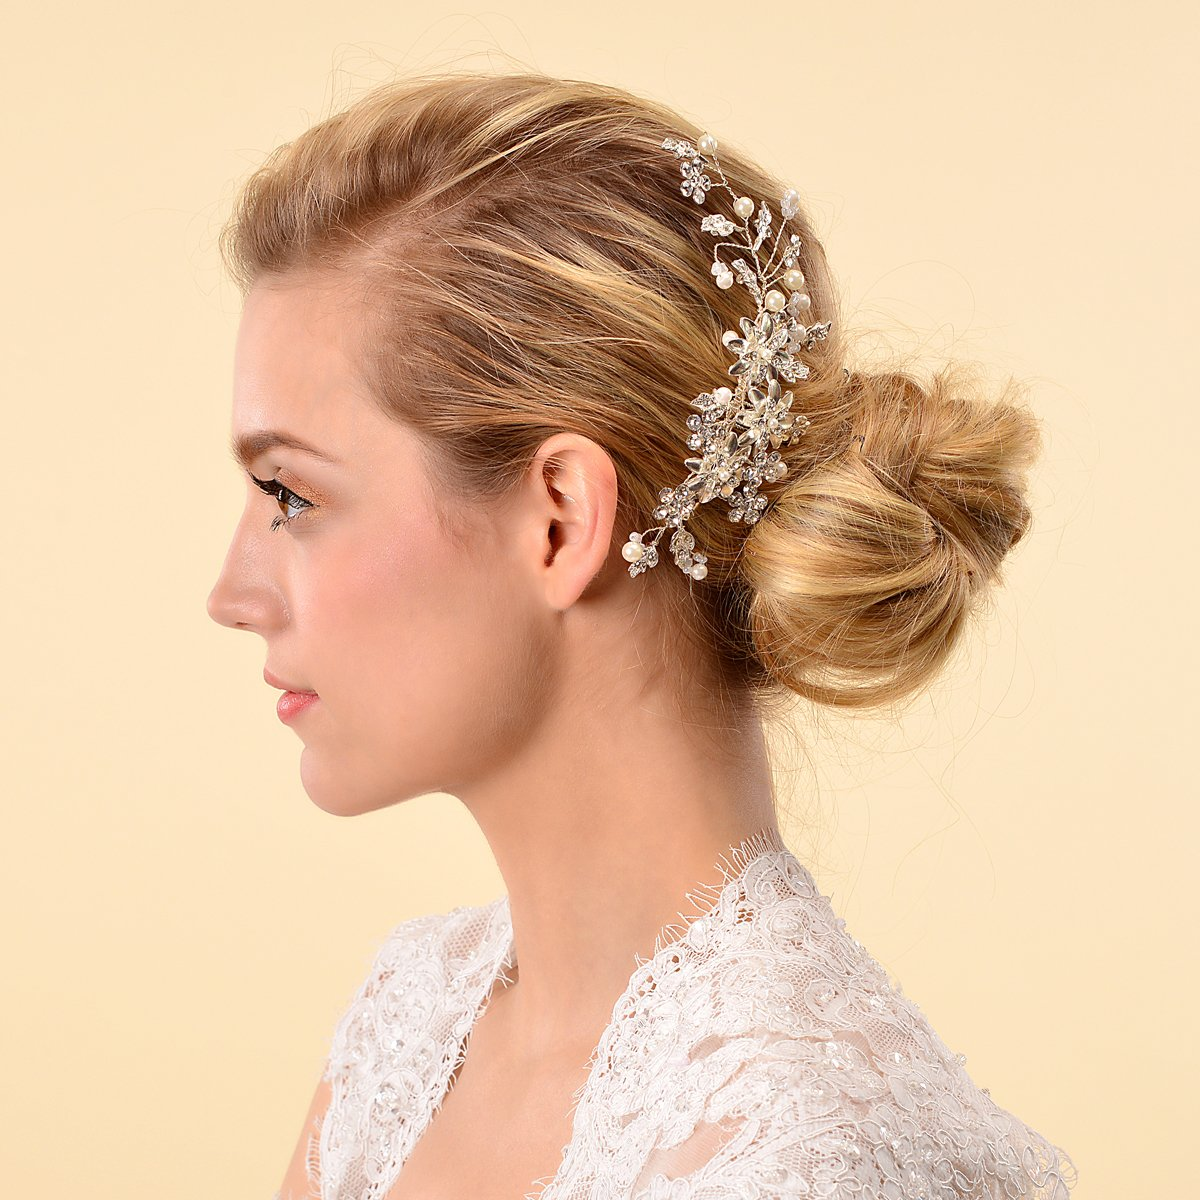 Remedios Cyrstal Flower Side Hair Comb | Curly Homecoming Hairstyles You Can Show Off